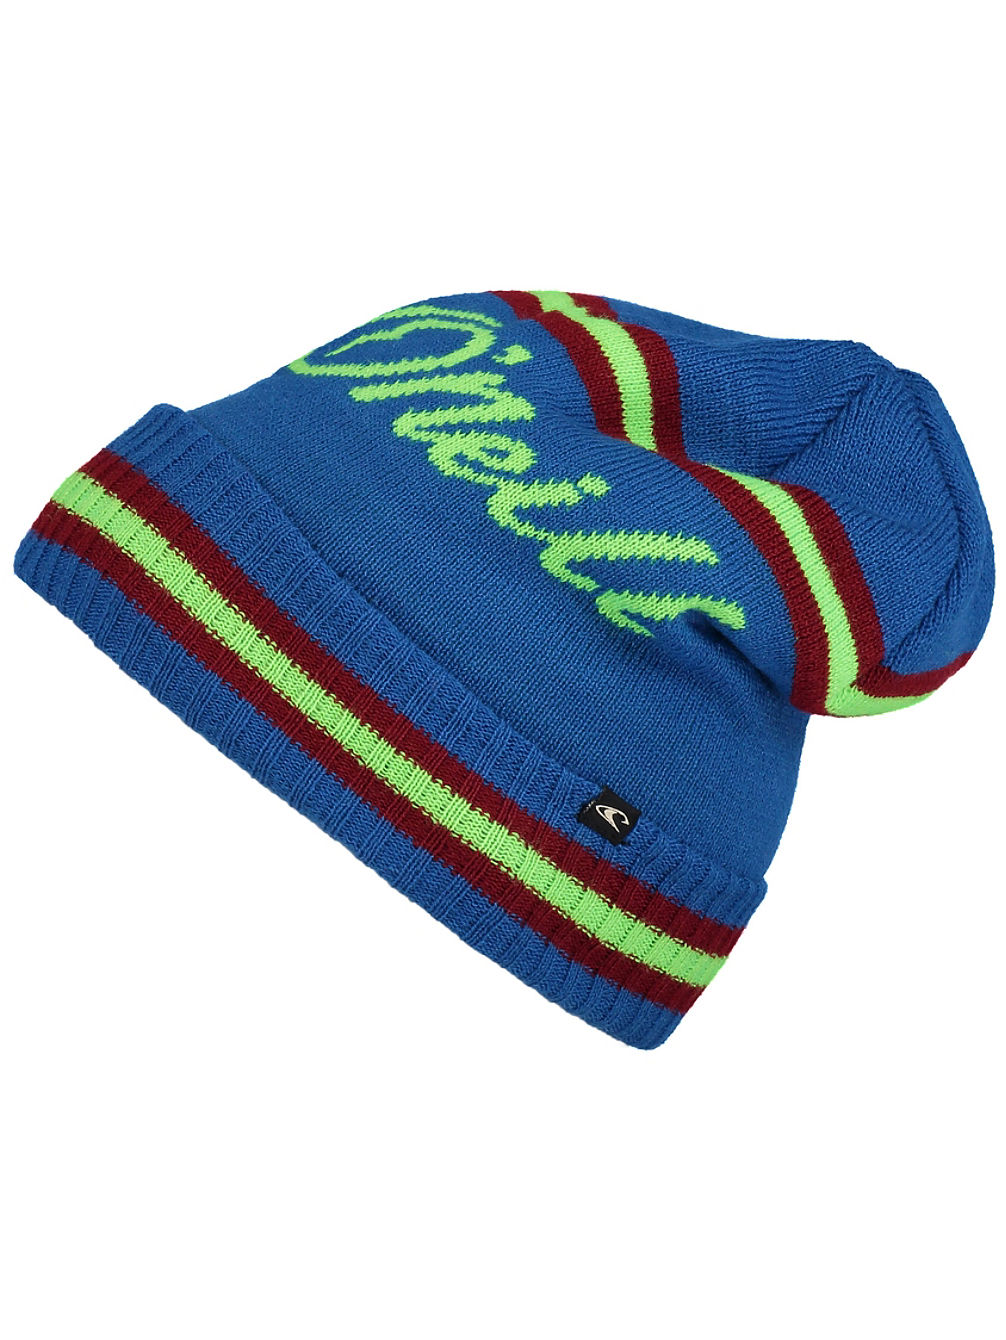 Statement Beanie Youth